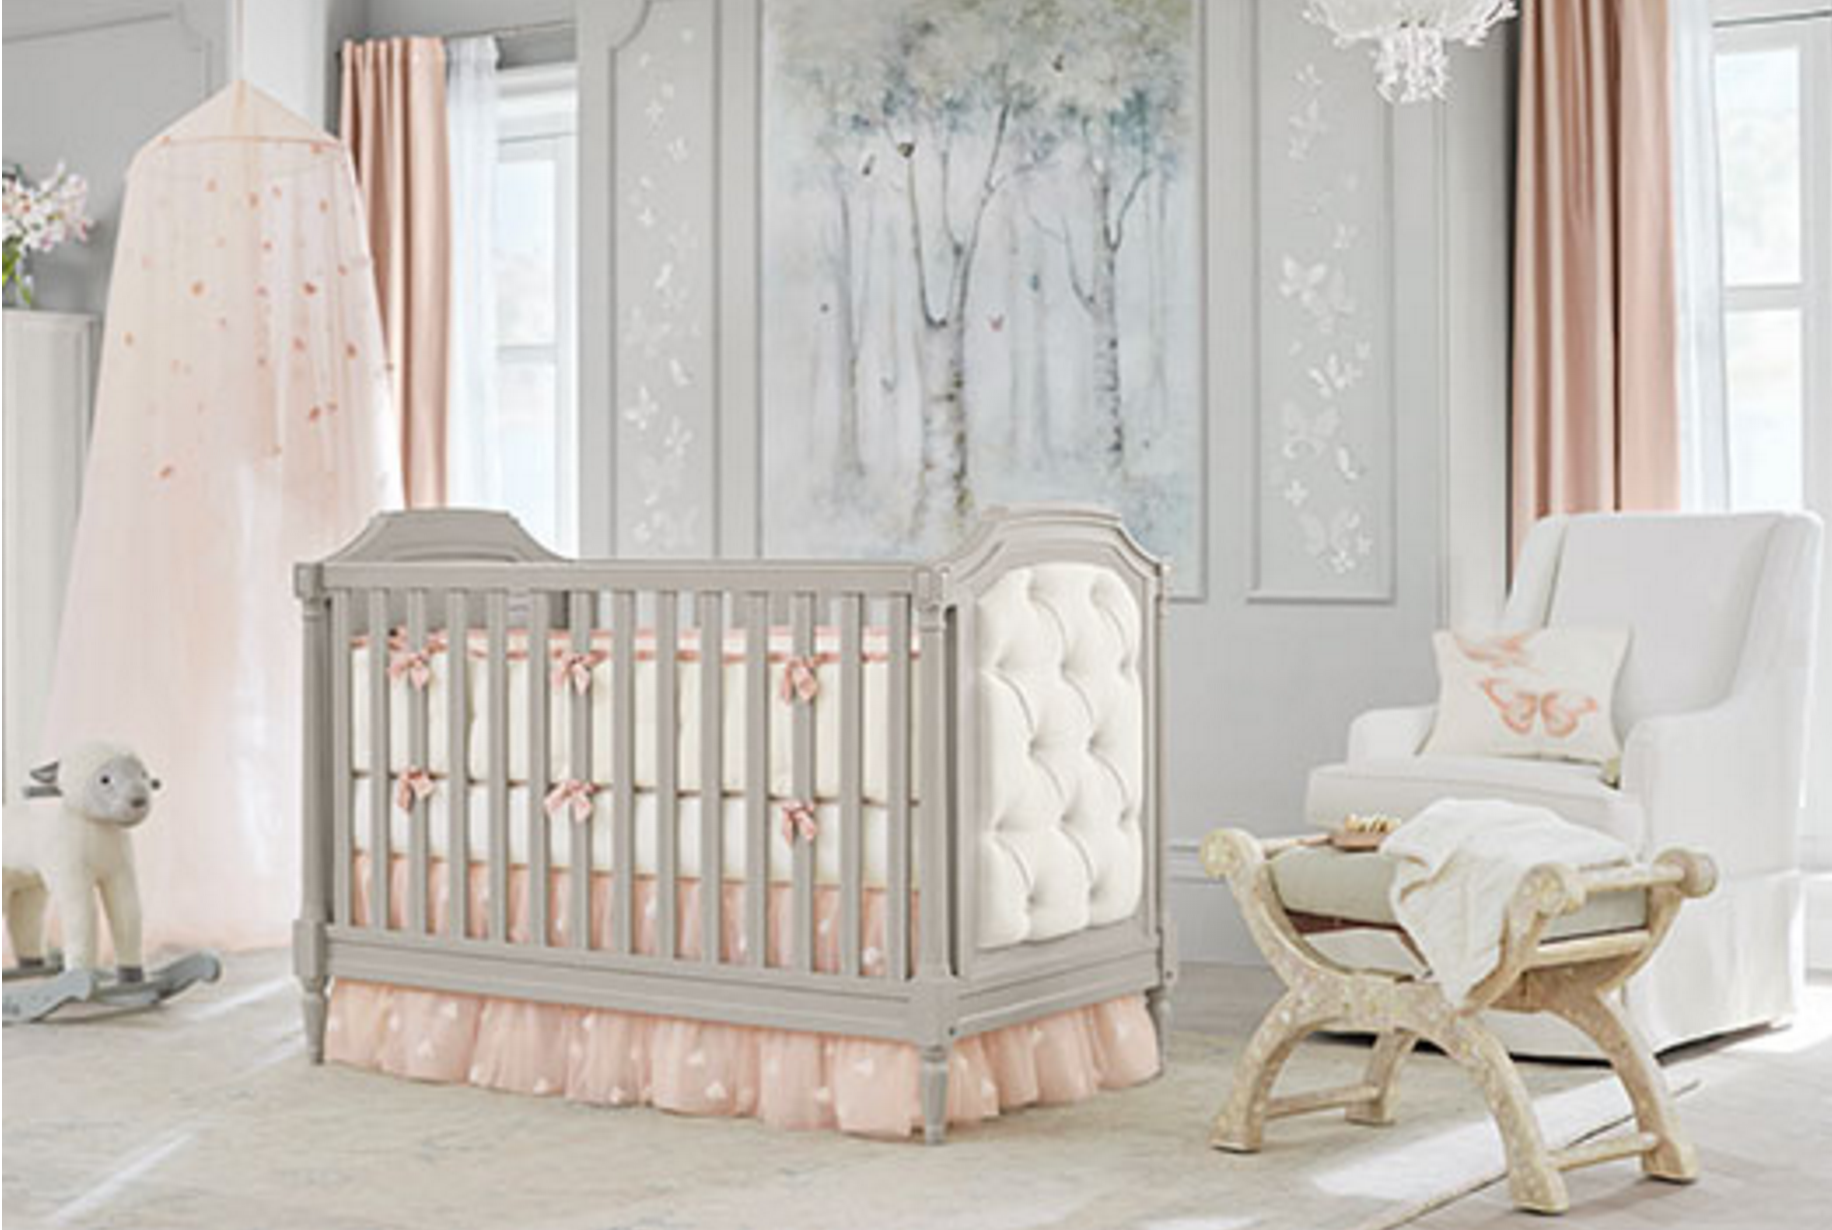 Monique Lhuillier Sateen Ethereal Butterfly Baby Bedding Monique Lhuillier Pottery Barn Kids Pottery Barn Kids Nursery Pottery Barn Baby